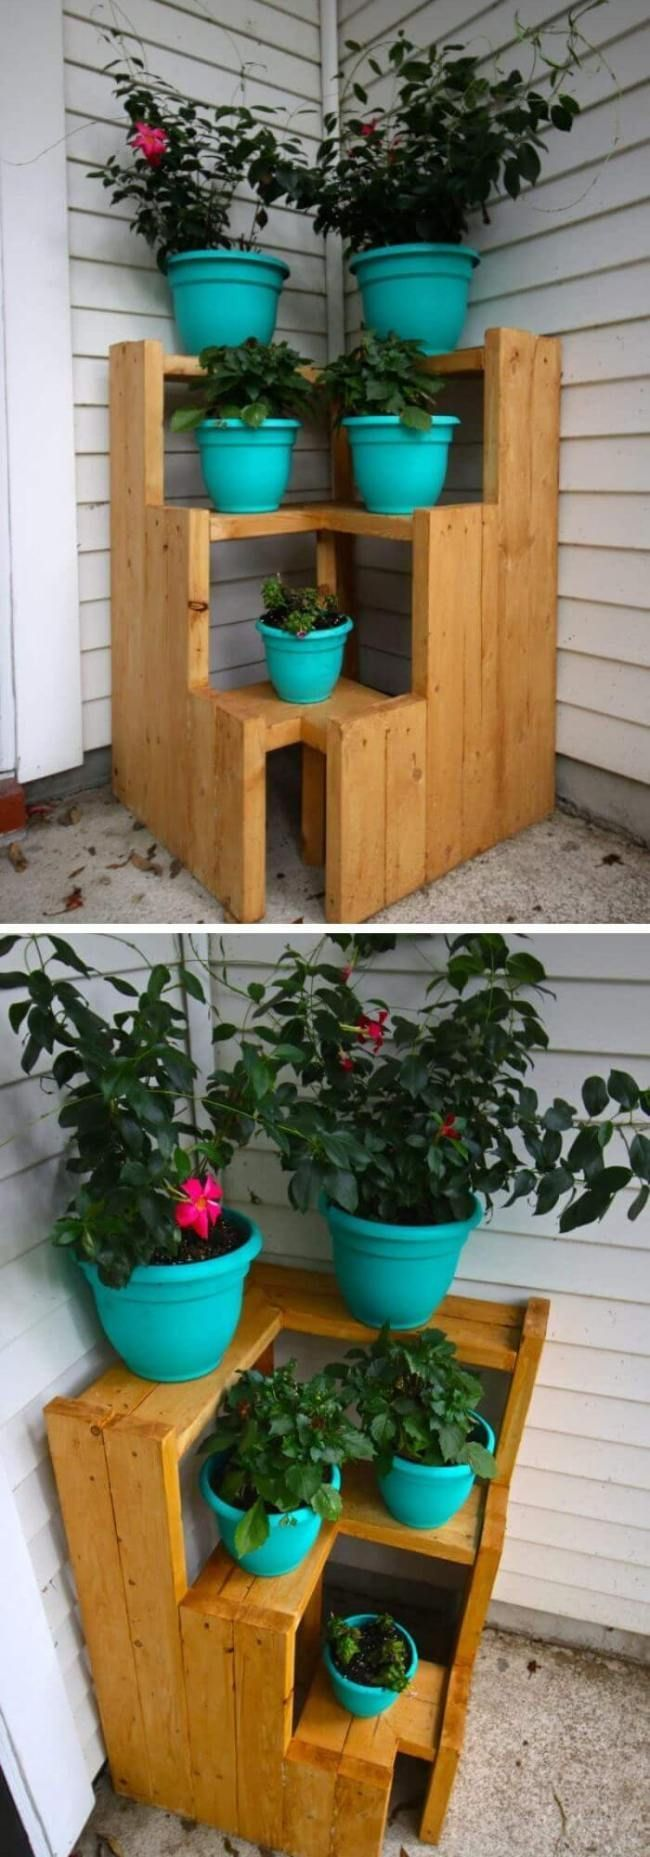 24+ Awesome DIY Outdoor Projects To Make Your Backyard ...